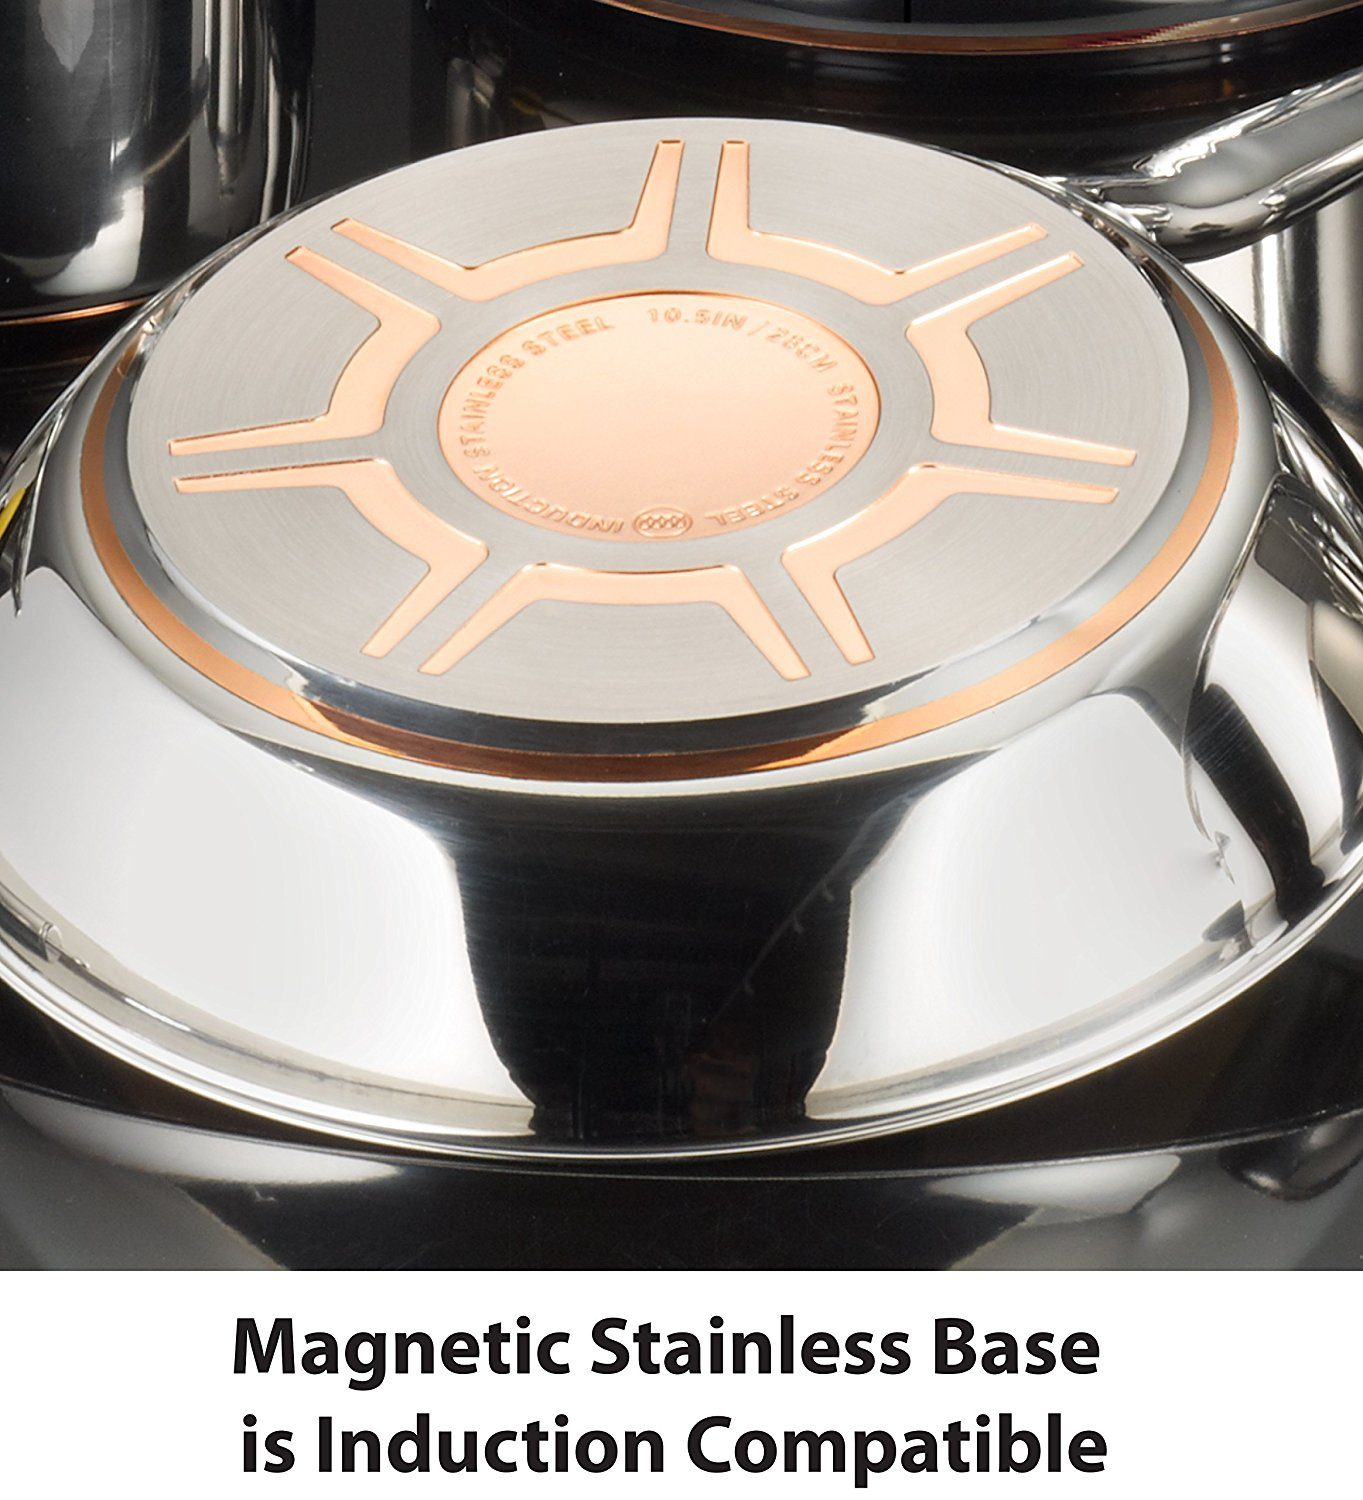 T-fal C836SC pans magnetic stainless steel base